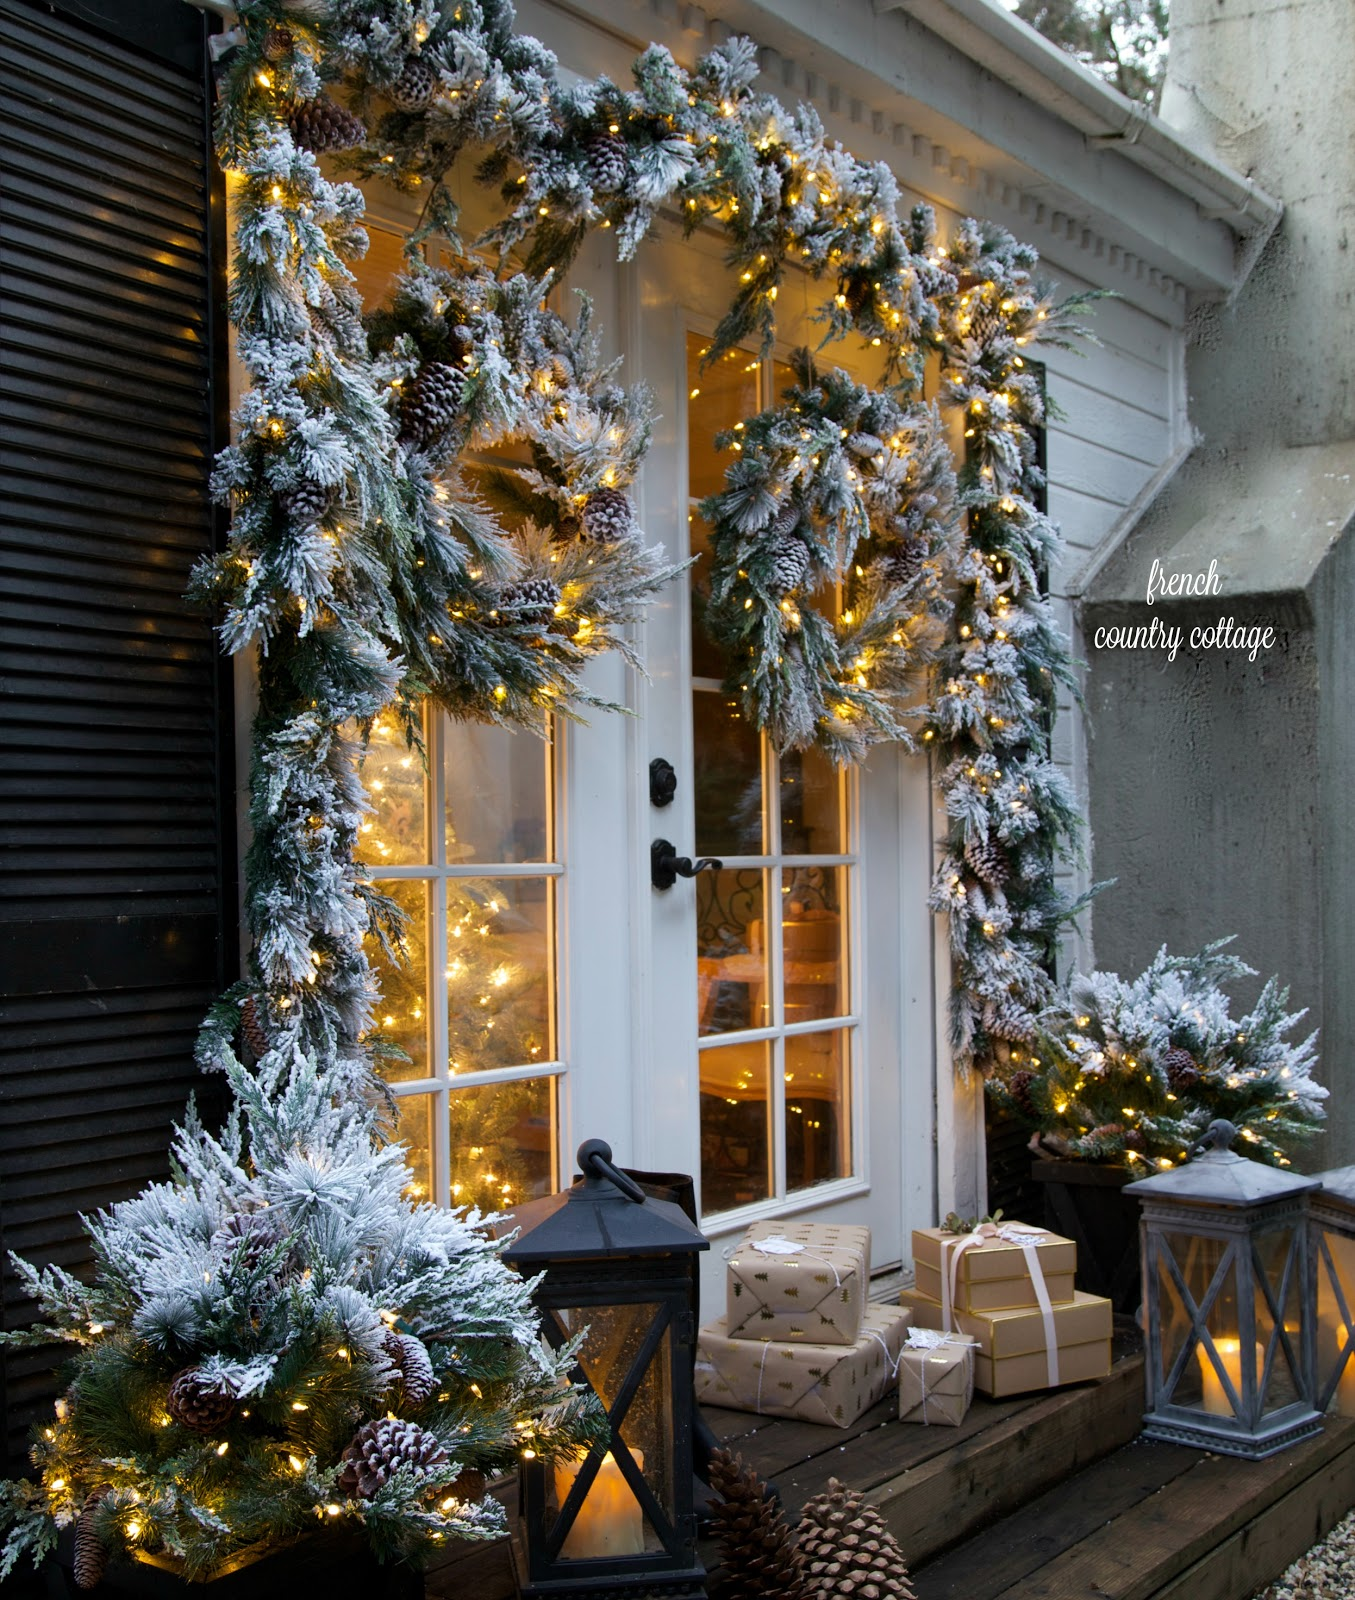 Merry & bright Christmas outdoors - FRENCH COUNTRY COTTAGE